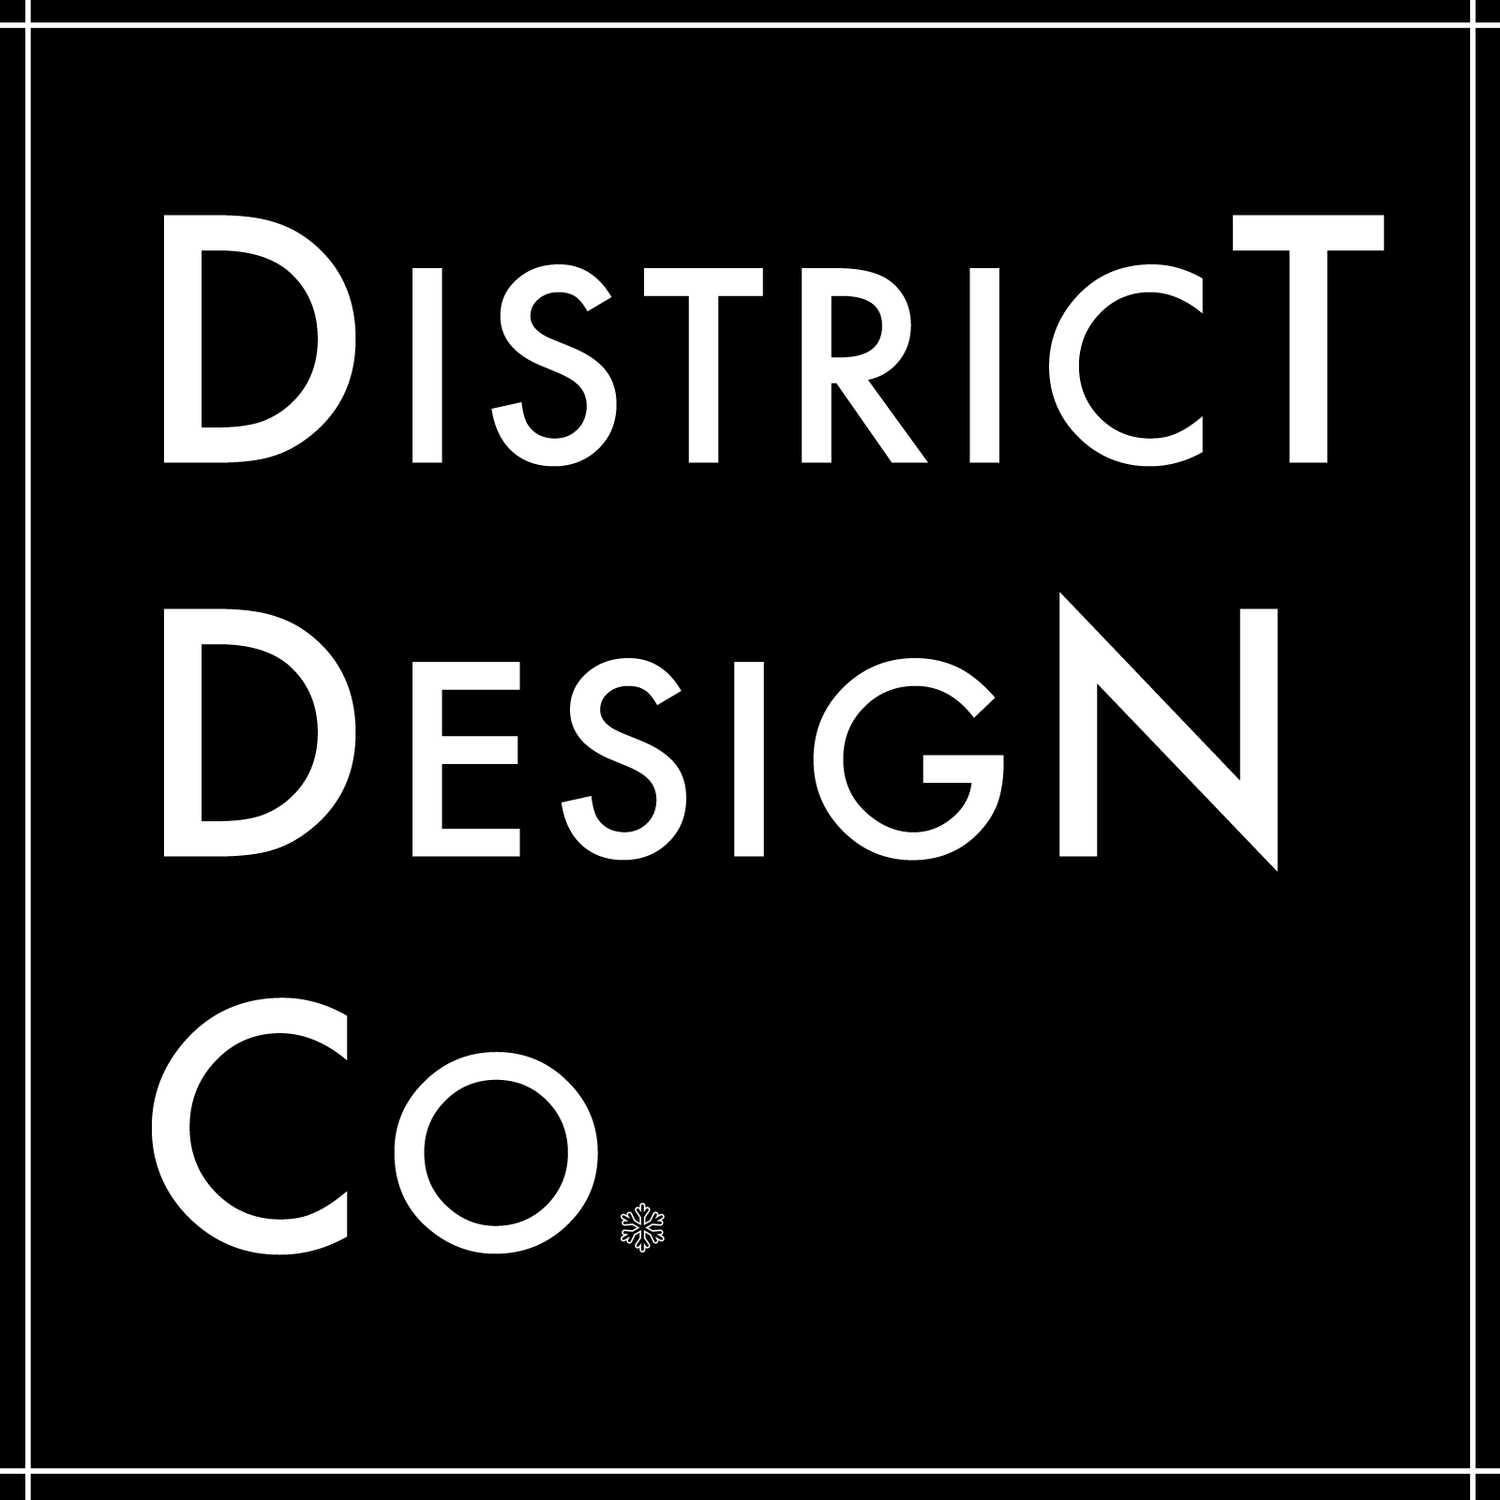 District Design Co.